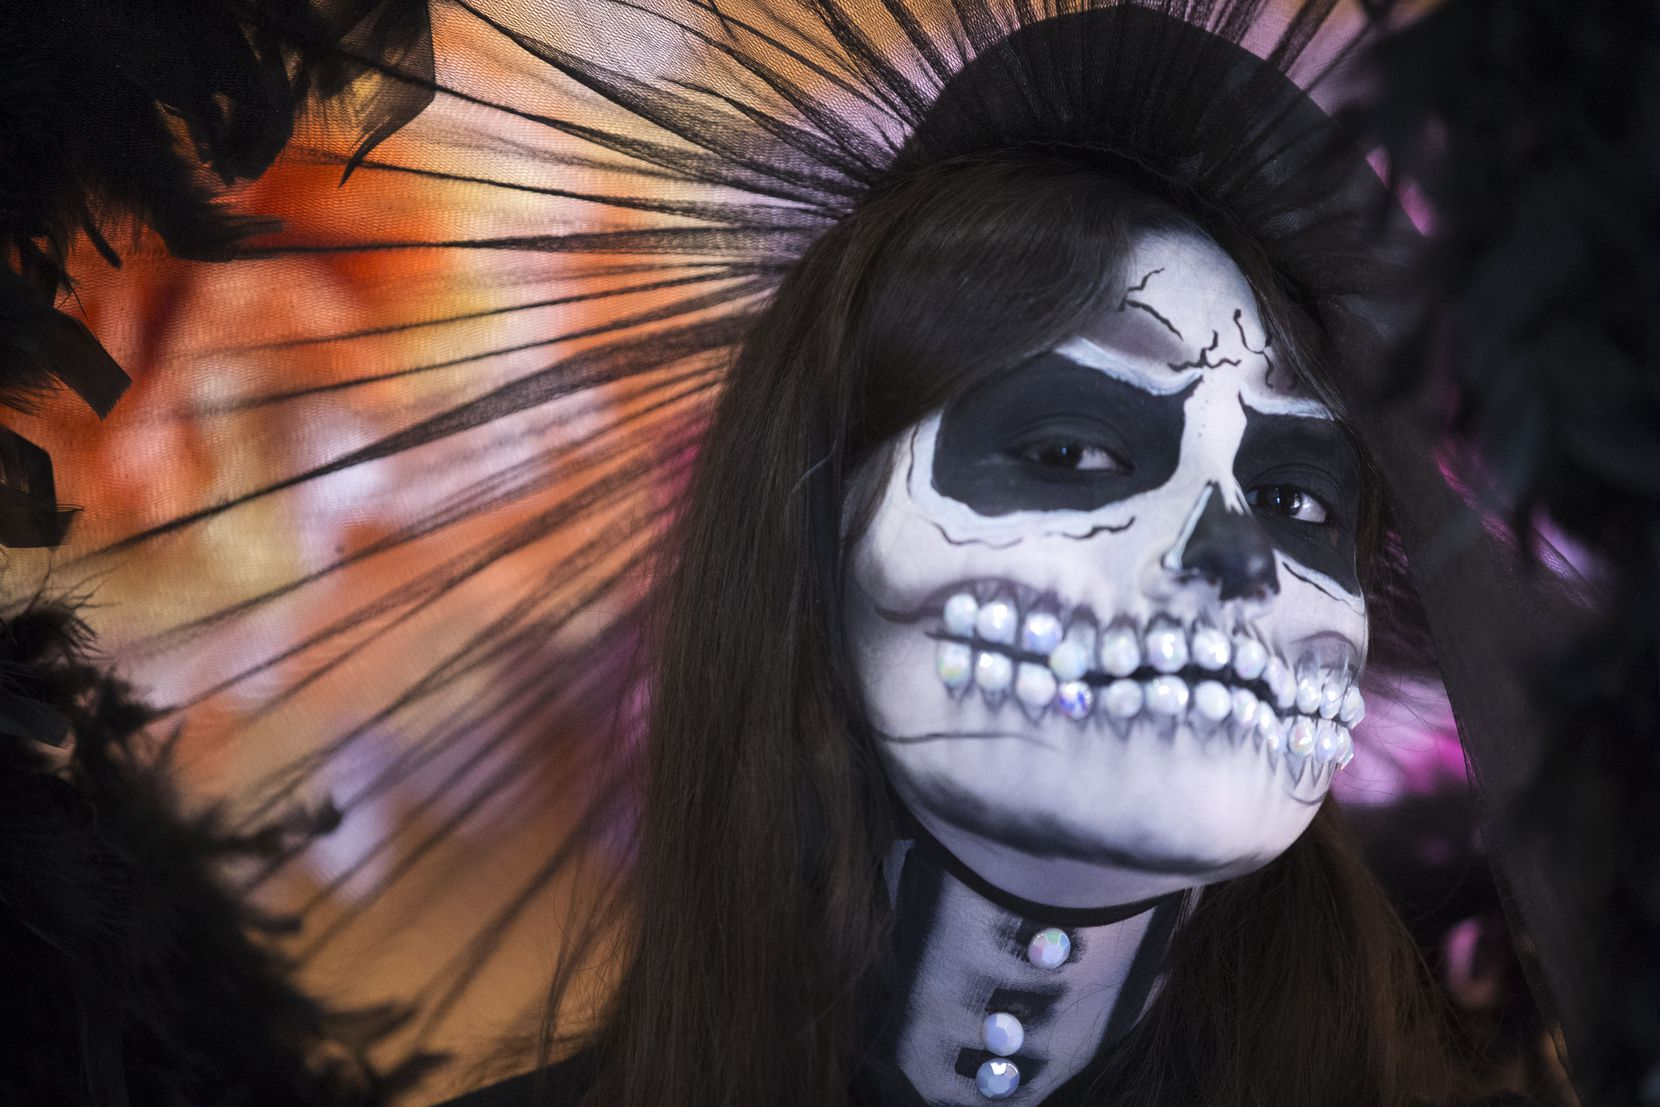 Model Brittney Martinez is styled as a traditional Catrina in a 1840's dress at a Día de los Muertos celebration at the Latino Cultural Center in Dallas on Saturday, October 27, 2018. People took pictures and selfies with Martinez. (Daniel Carde/The Dallas Morning News)